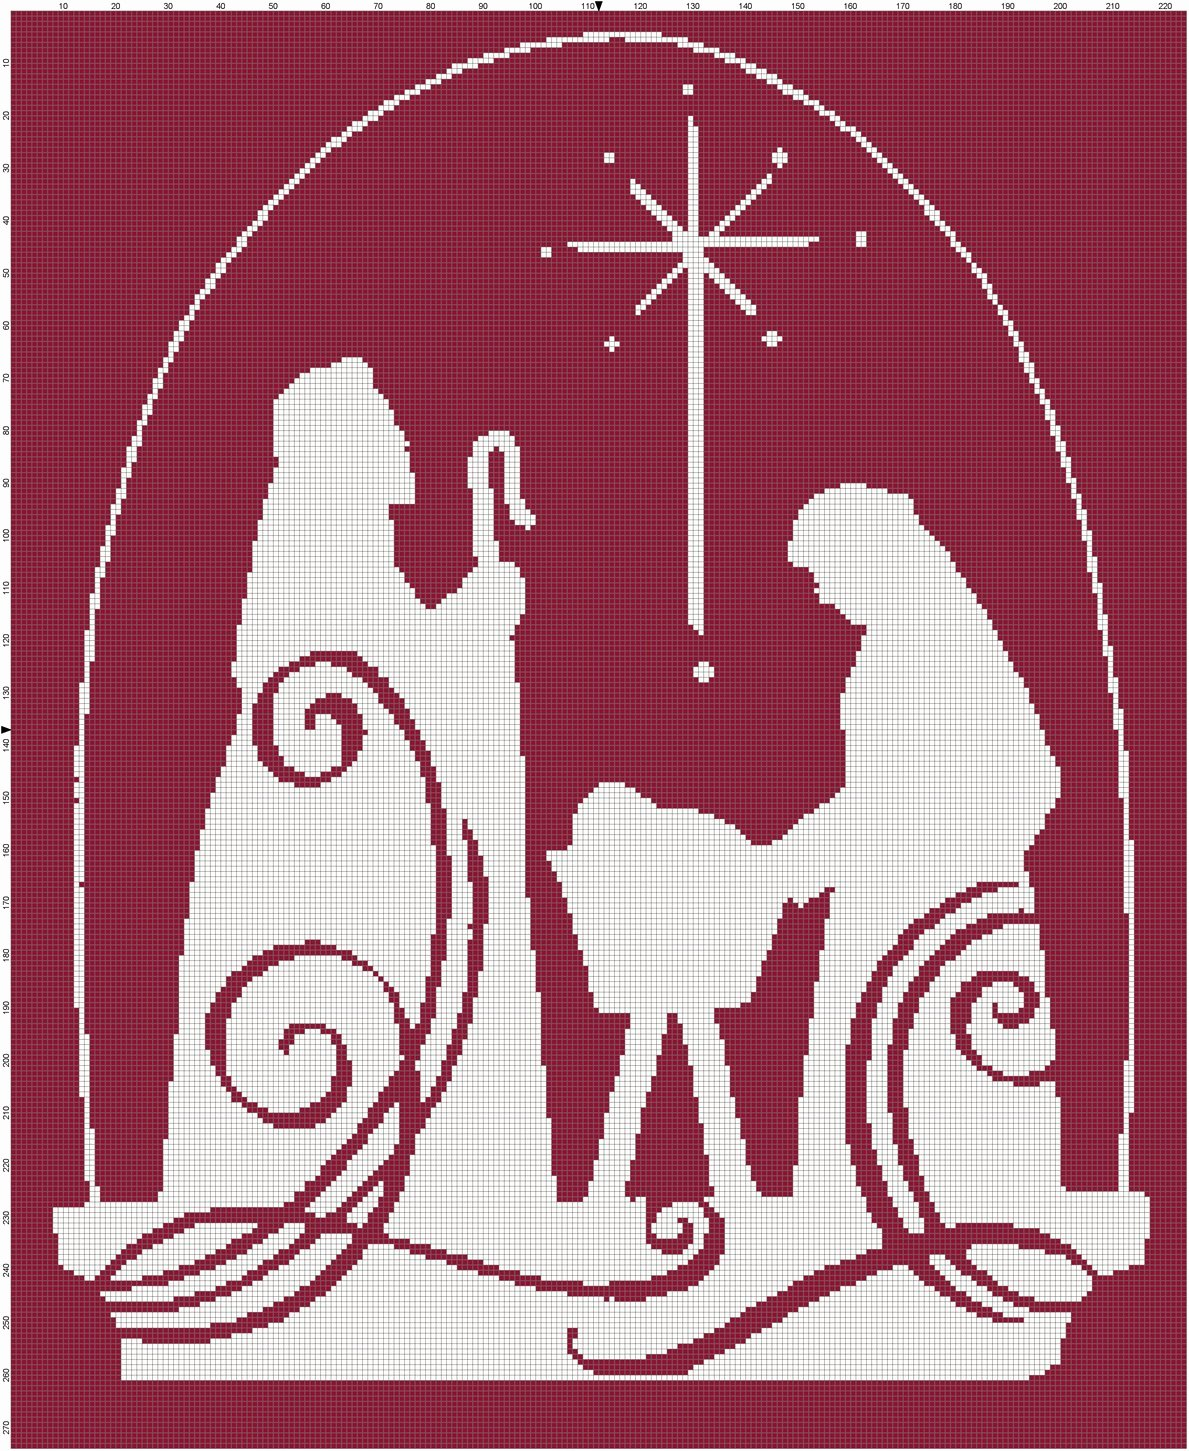 Nativity Silhouette Pattern Inspirational It's Beginning to Look A Lot Like Christmas – Cross Stitch